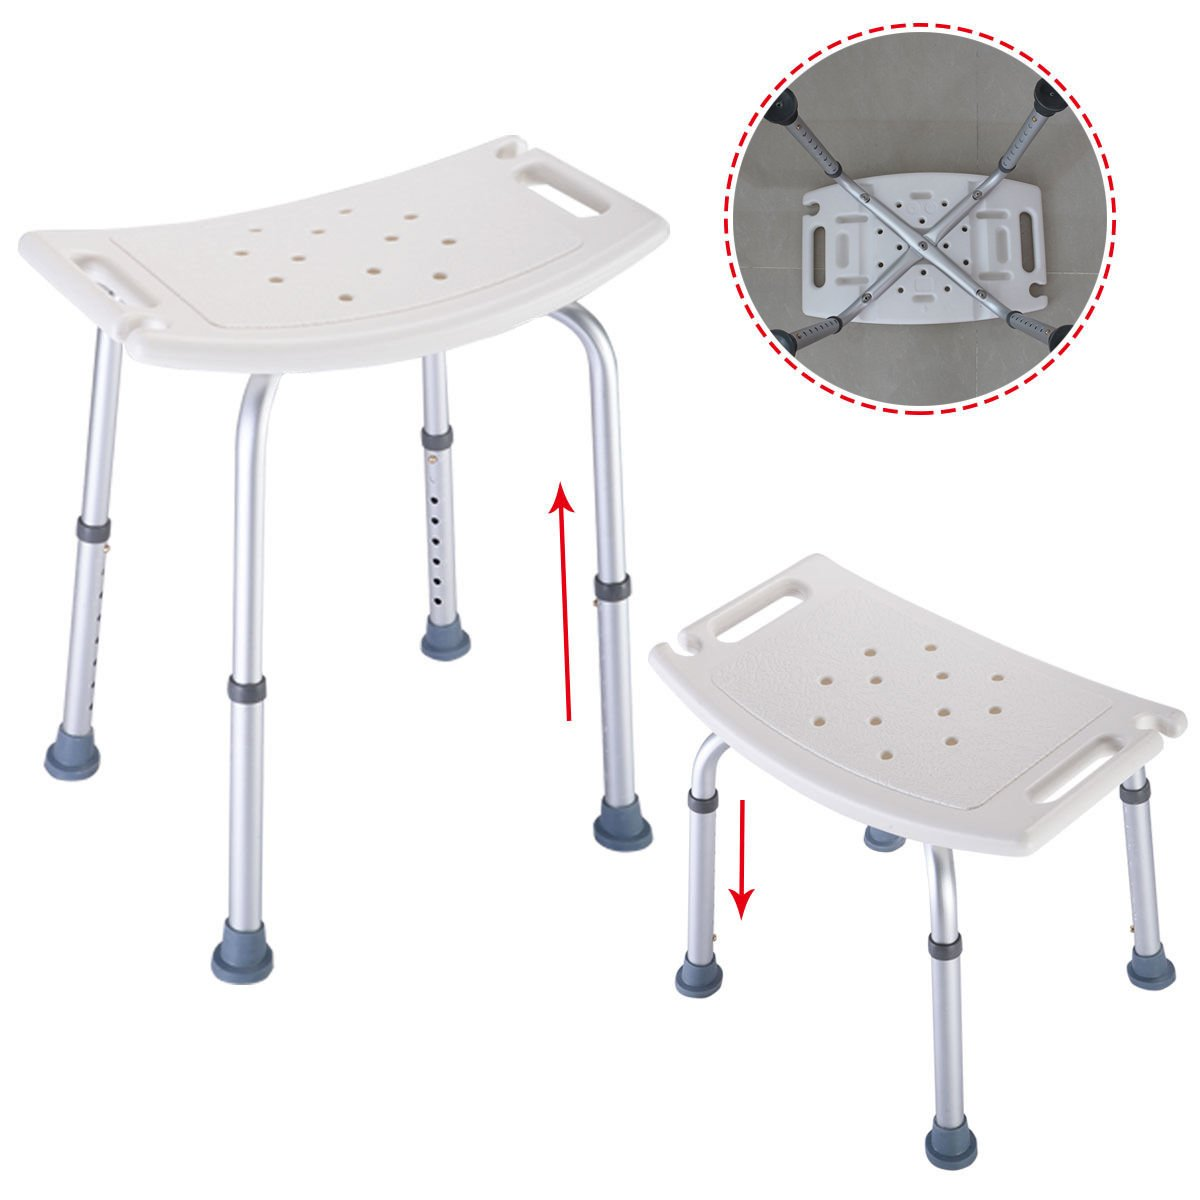 Coldcedar Bath Bench 8 Height Adjustable Tool-Free Assembly Spa Shower Chair Medical Bath Bench Bathtub Stool Seat Lightweight White Shower Bench With Non-Slip Seat